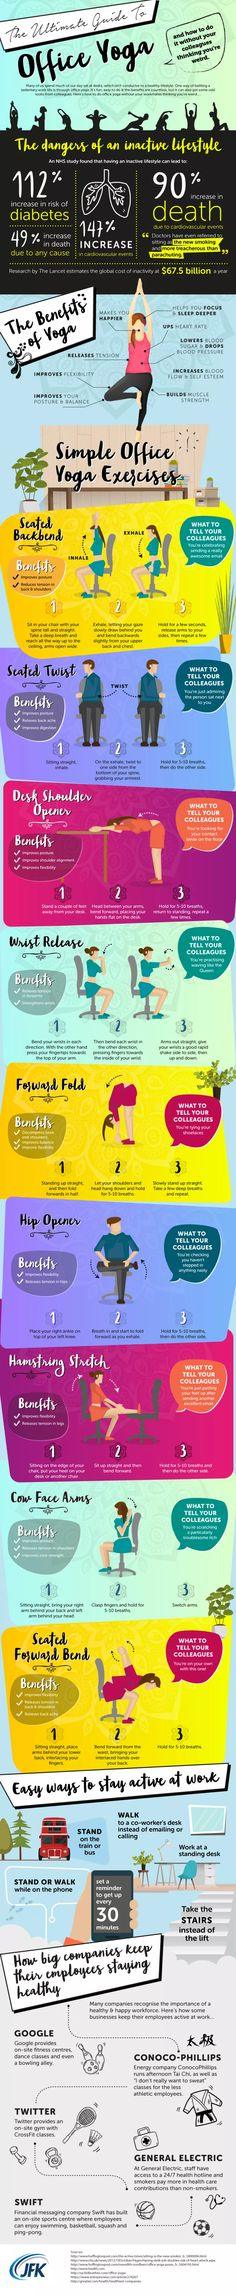 The Ultimate Guide To Office Yoga #Infographic #Health #Workplace #Yoga